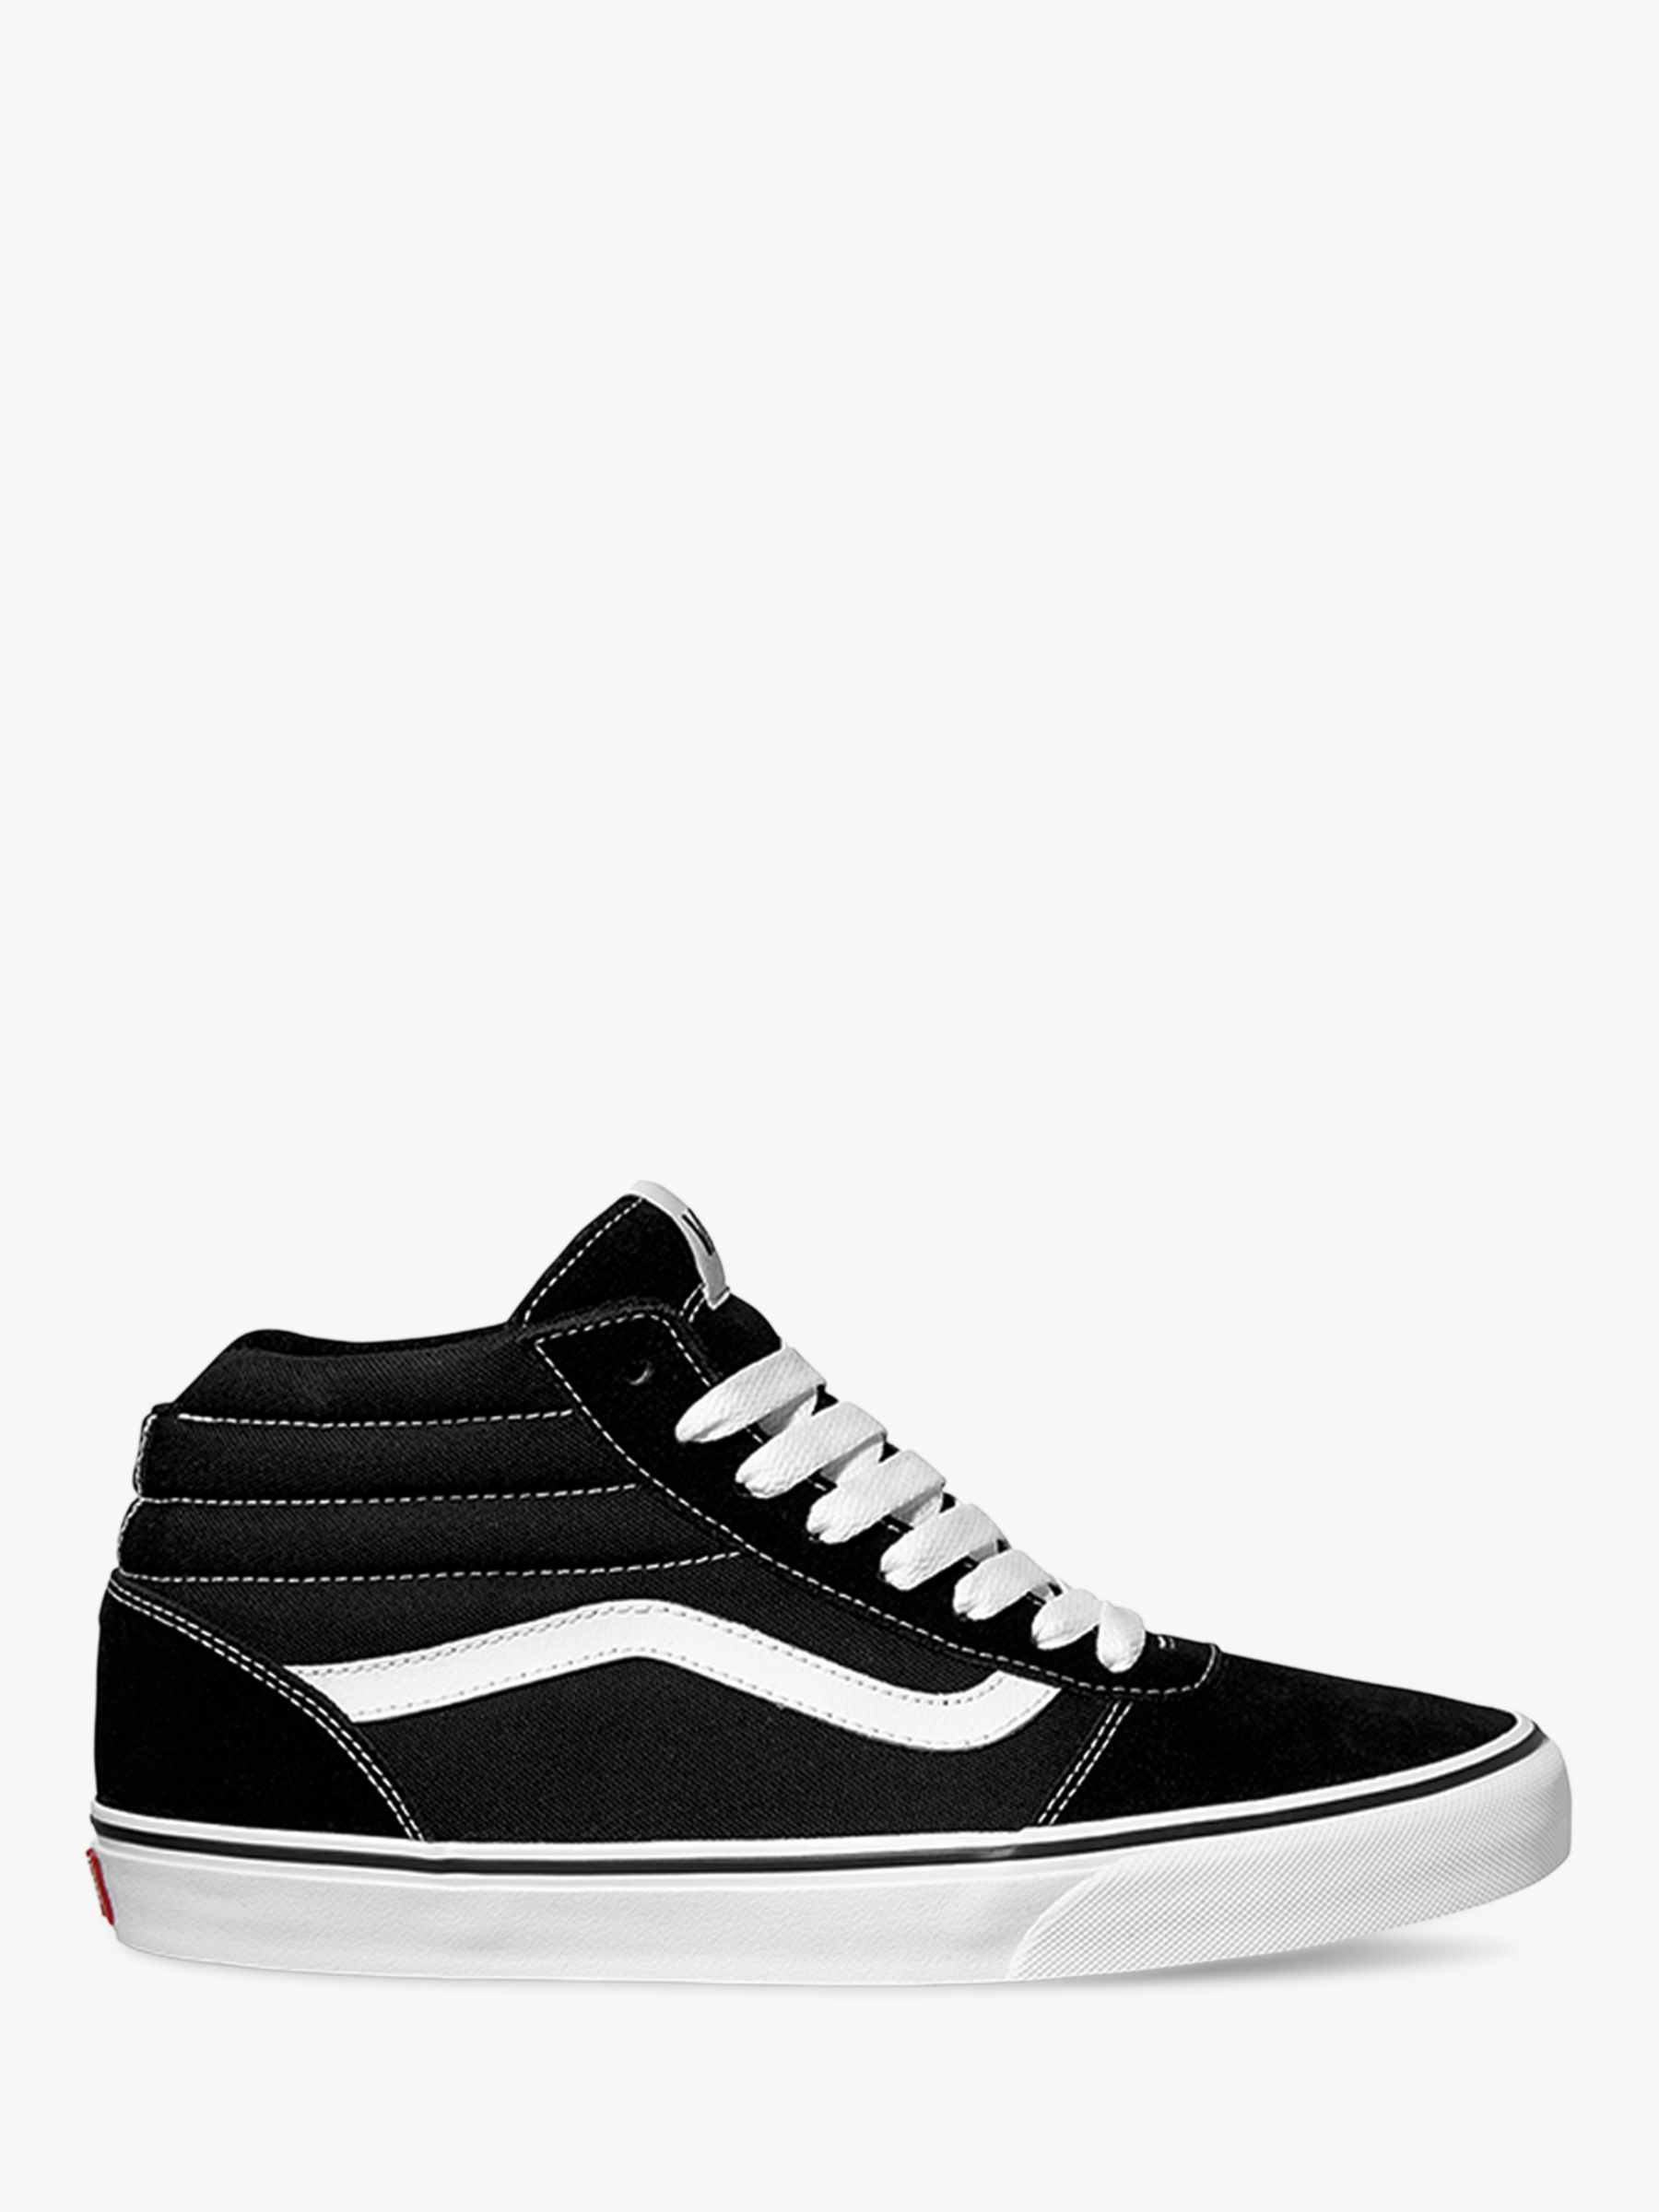 1bdeb6c34 Vans Ward Canvas High Top Trainers, Black at John Lewis & Partners